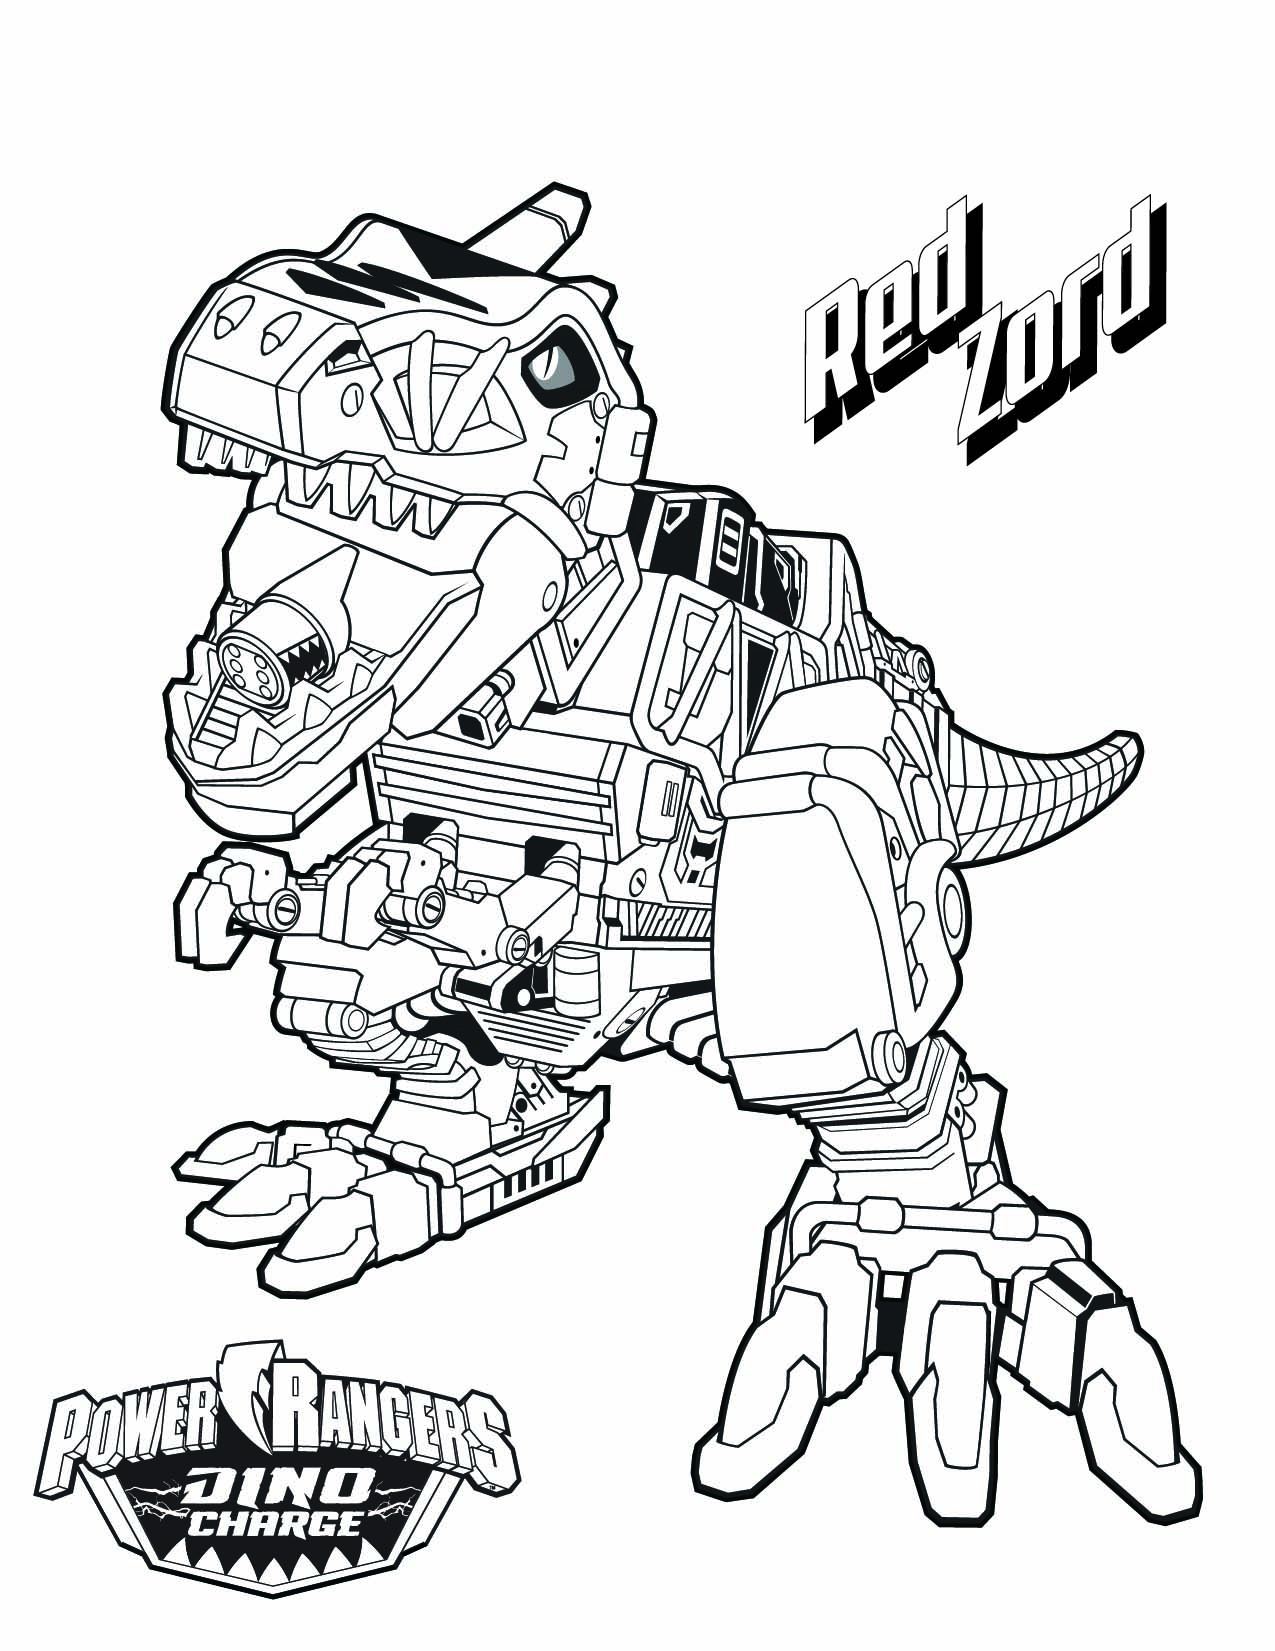 1275x1651 Free Power Rangers Dino Charge Coloring Pages Inspiring Bridal